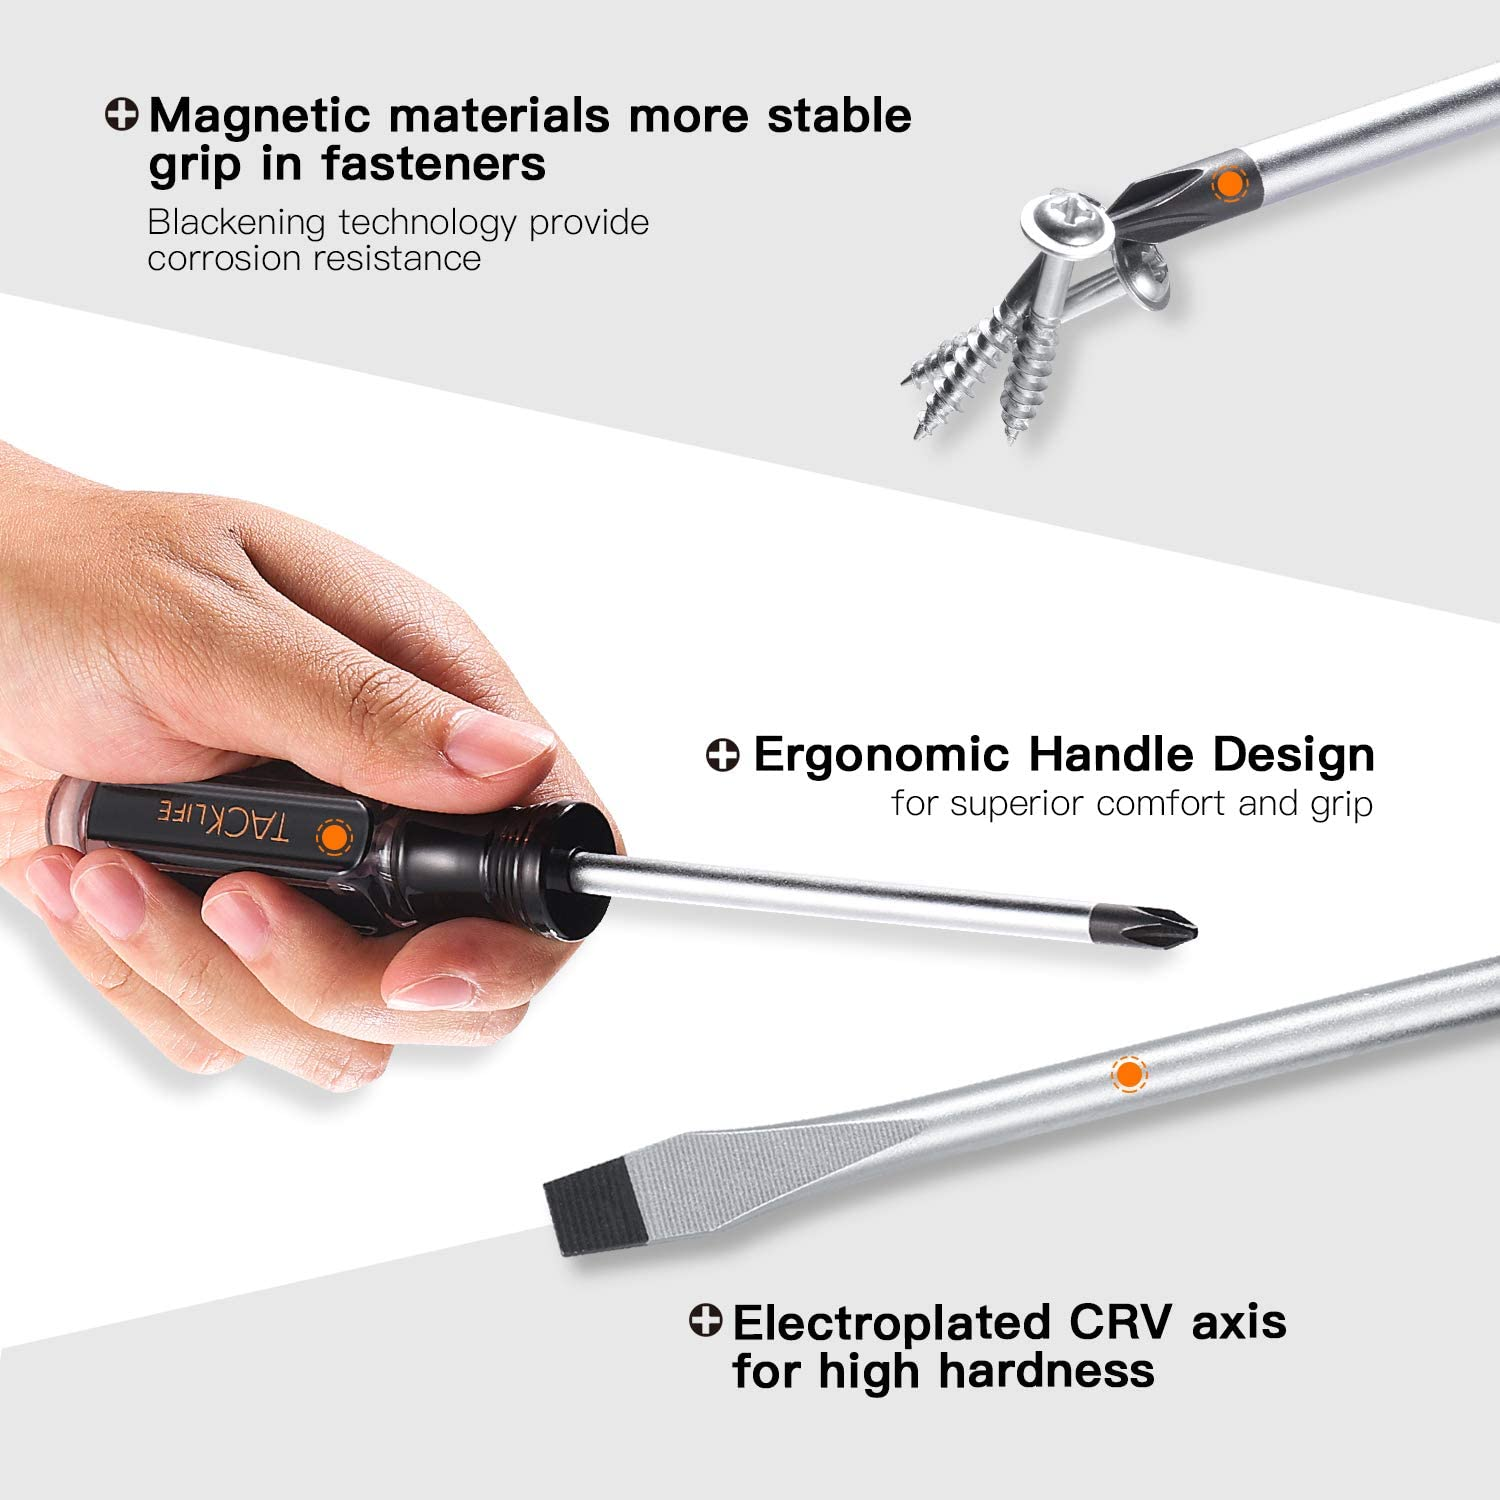 TACKLIFE Screwdriver Set,18pcs Magnetic Slotted/Phillips Screwdrivers and Acetate Hard Grip Handle Screwdriver with Case-HSS7A: Home Improvement